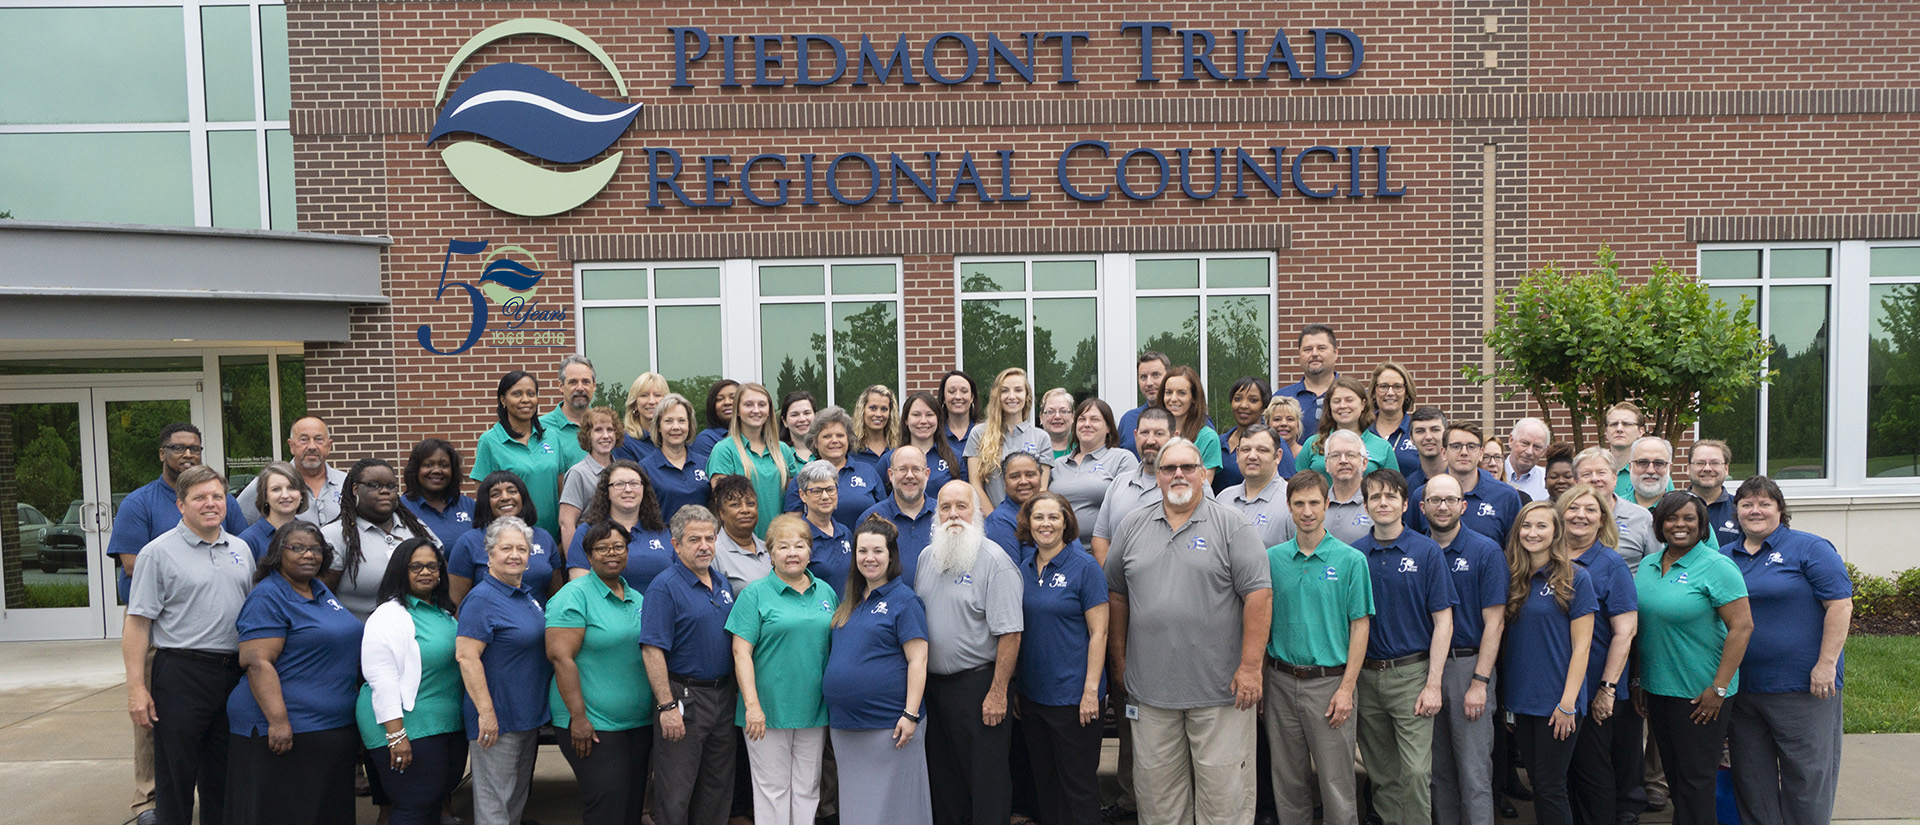 staff photo with 50th years logo embedded